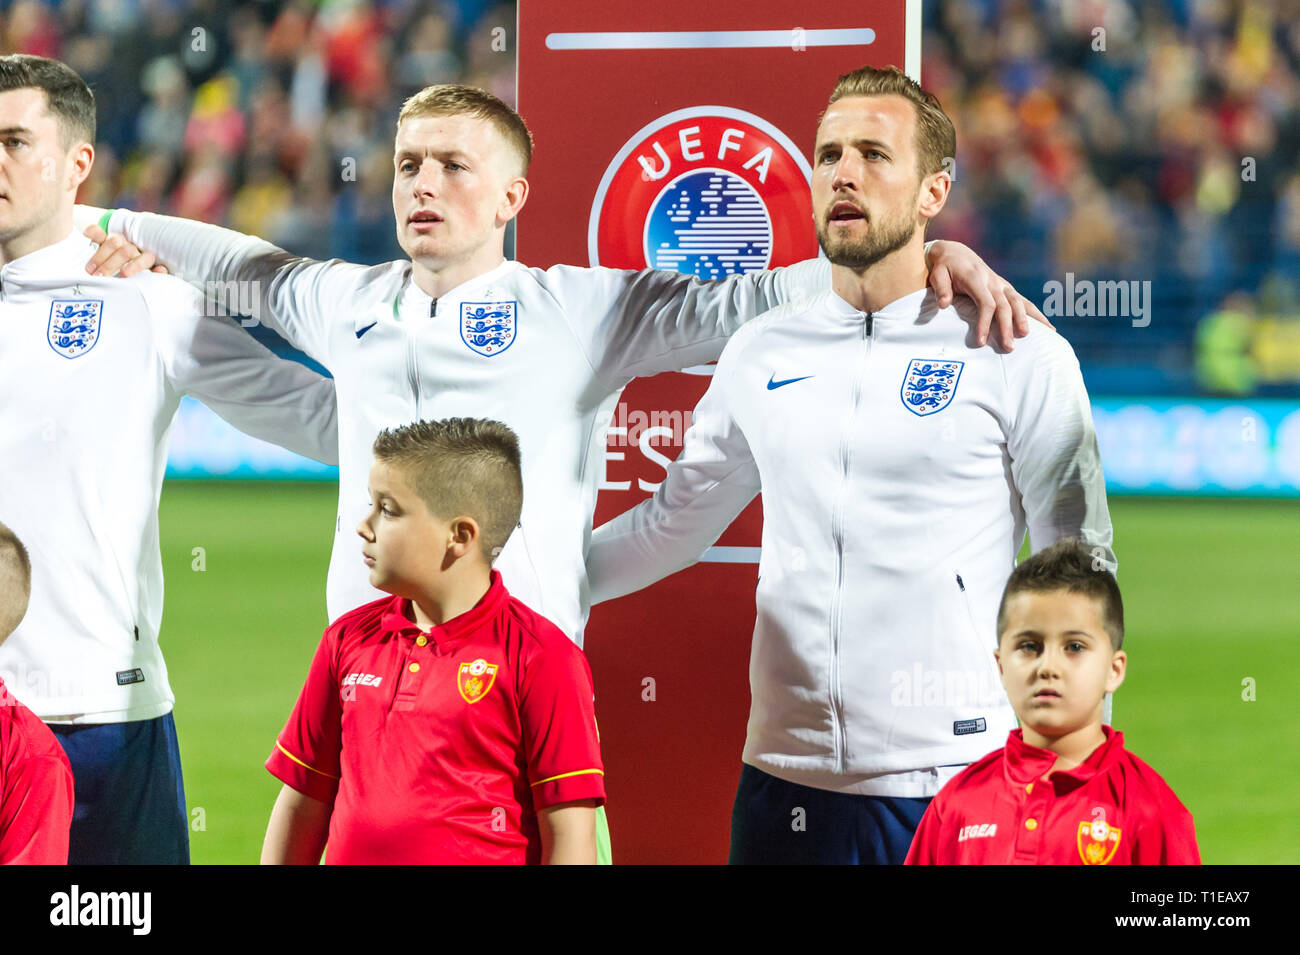 new styles 1aa69 c2c81 England National Soccer Team Stock Photos & England National ...